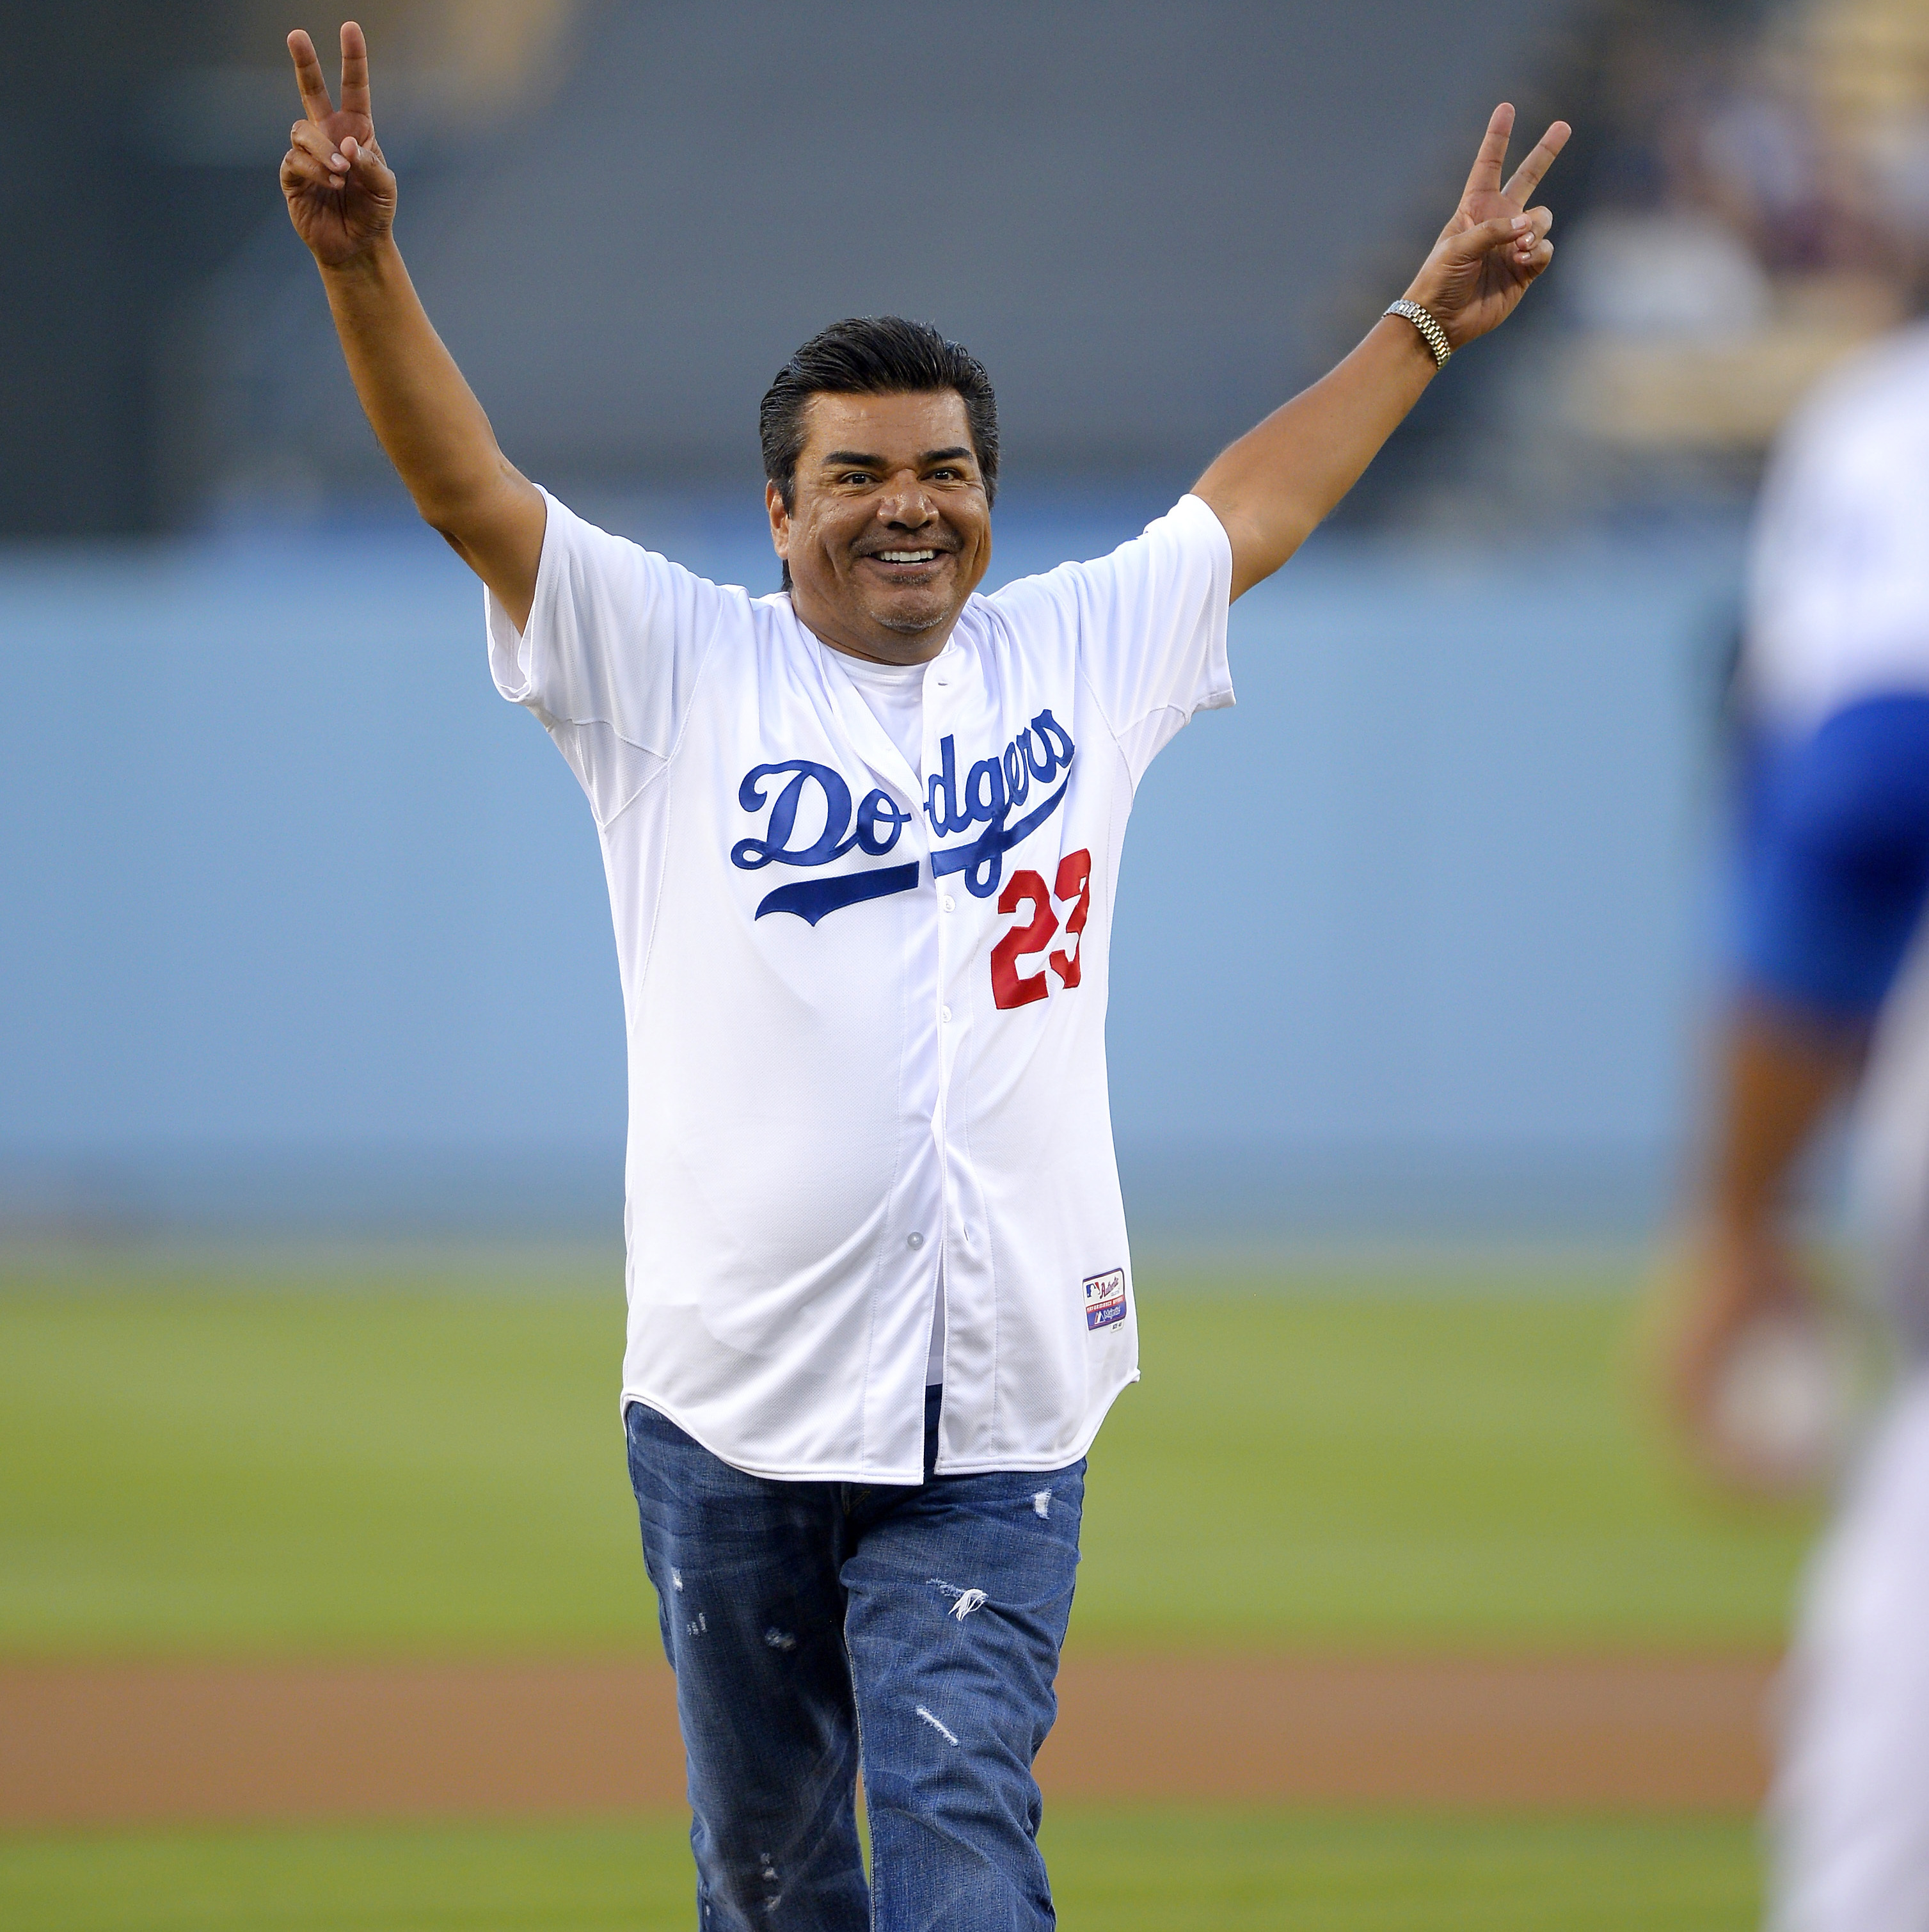 Comedian George Lopez leaves the mound after throwing out the ceremonial first pitch prior to the Los Angeles Dodgers' baseball game against the New York Mets on Wednesday.